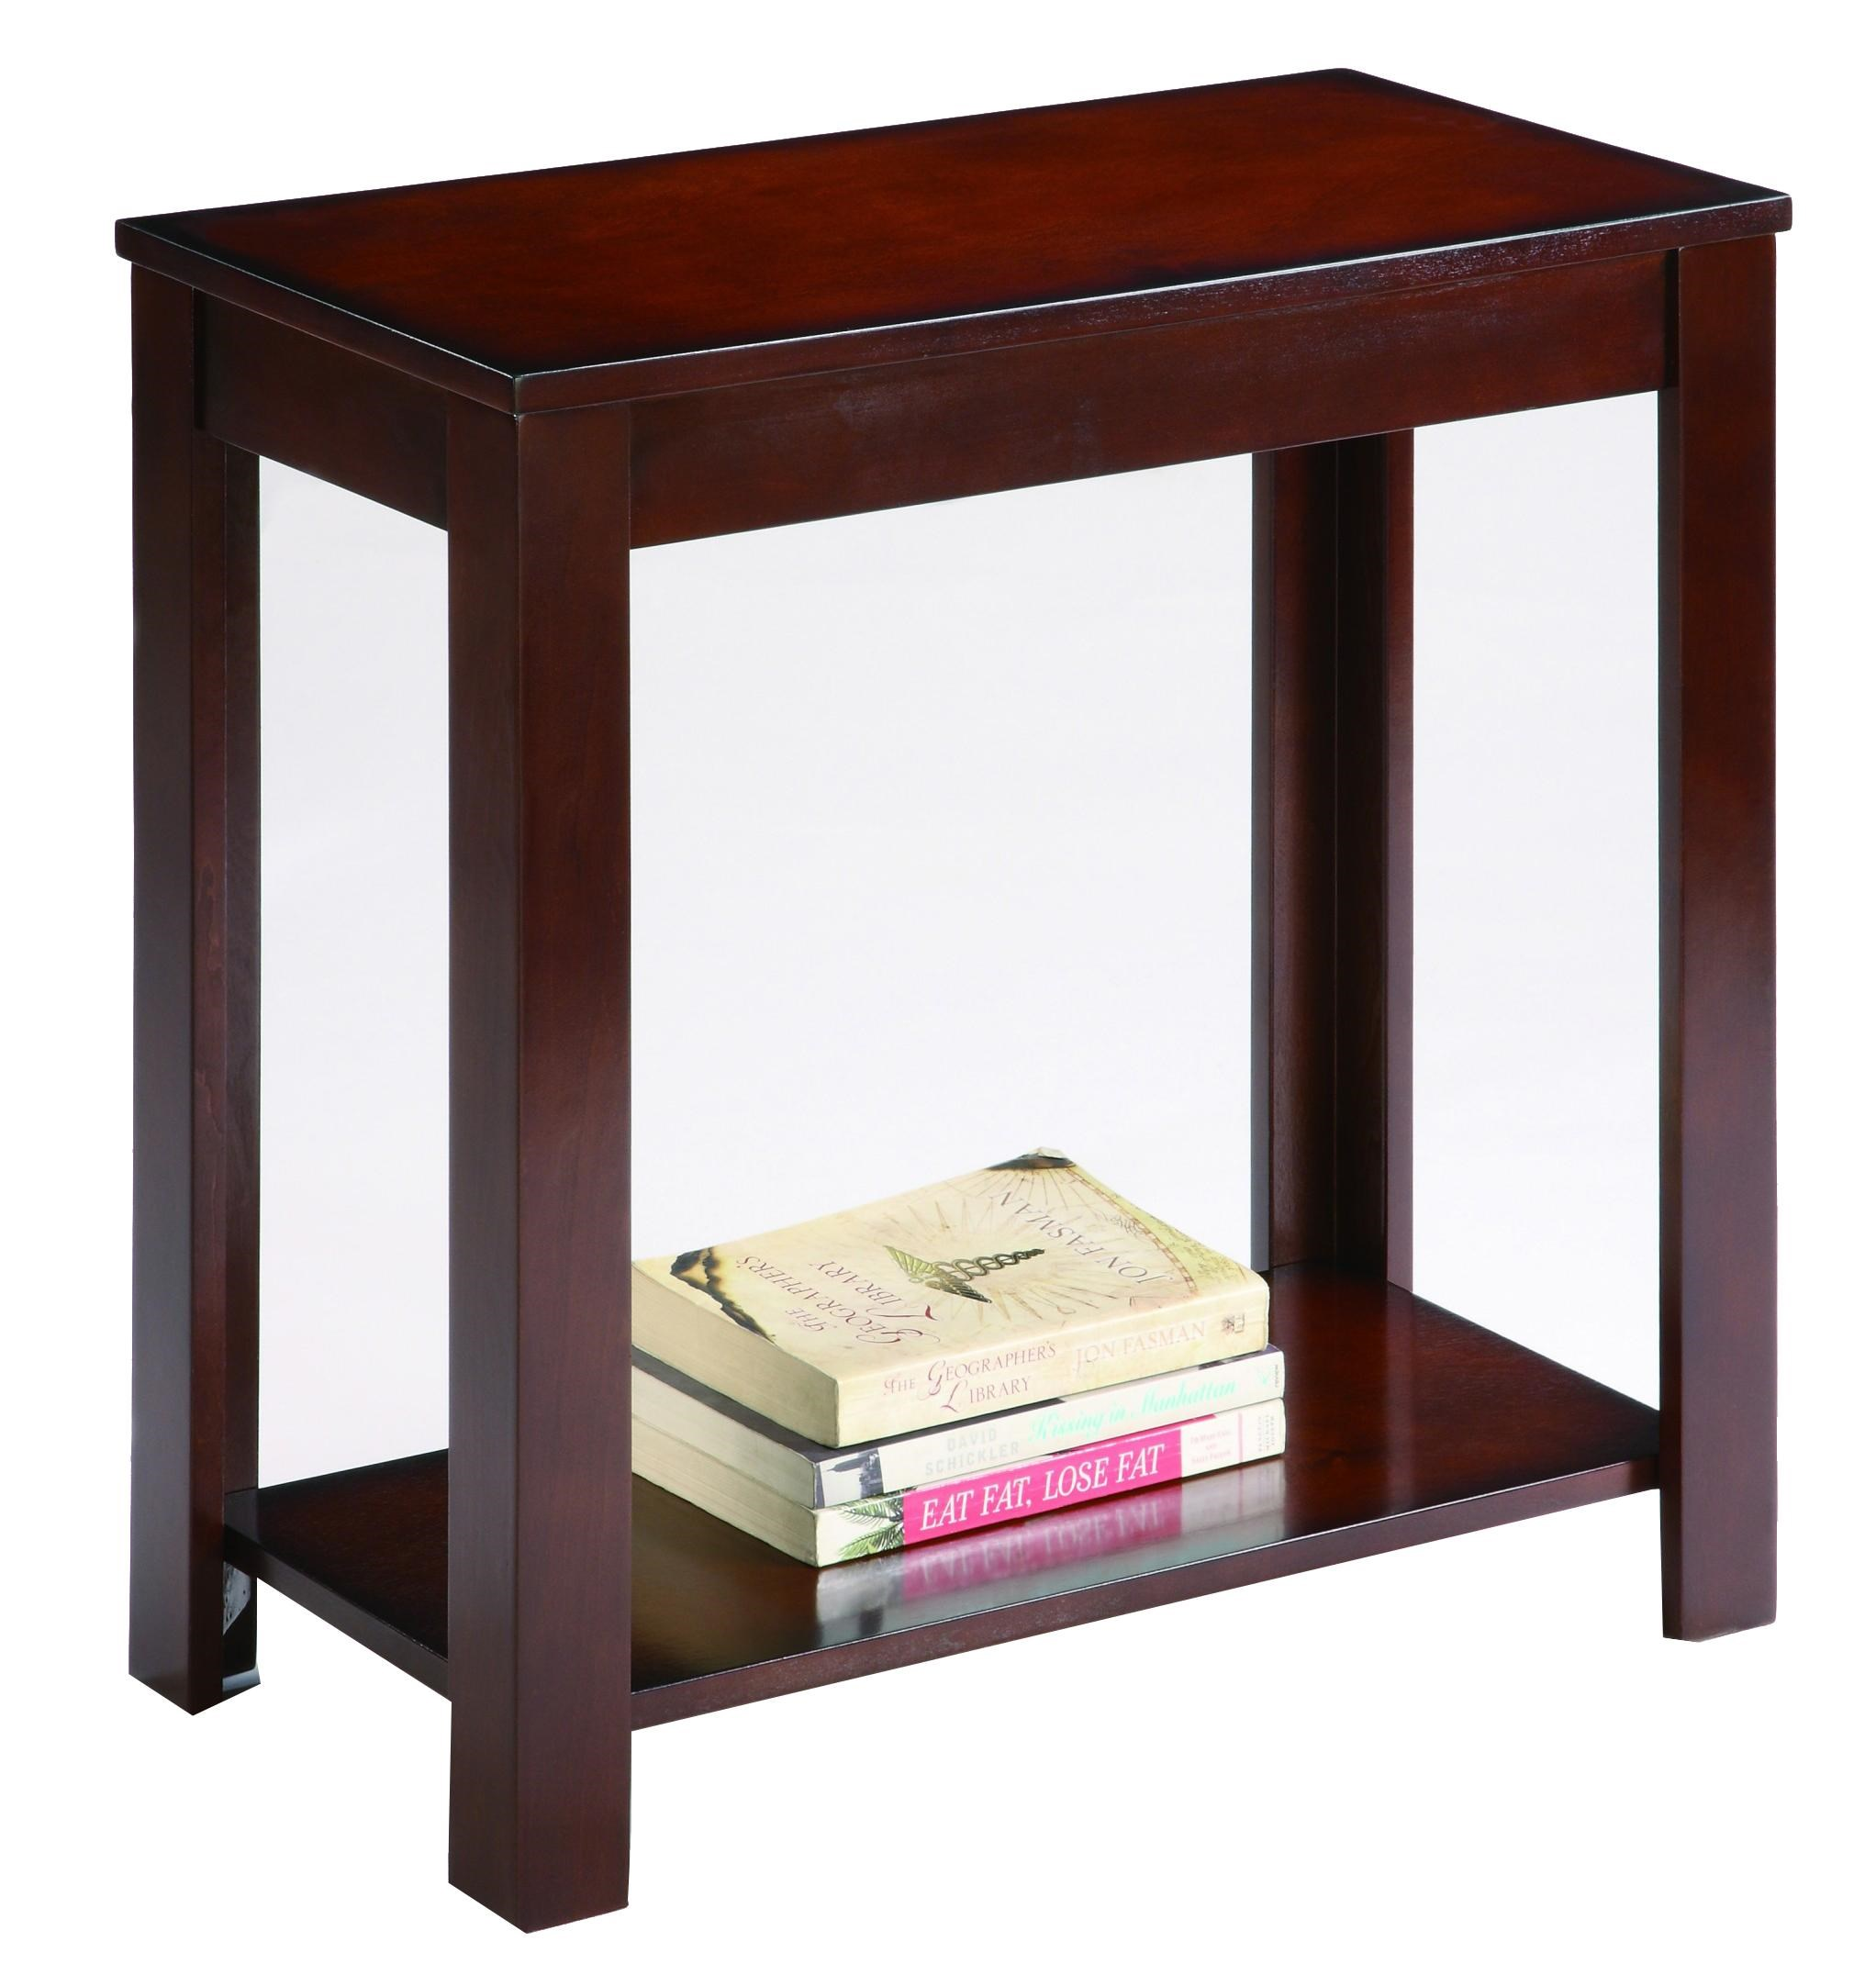 Contemporary Chairside Table with Bottom Shelf